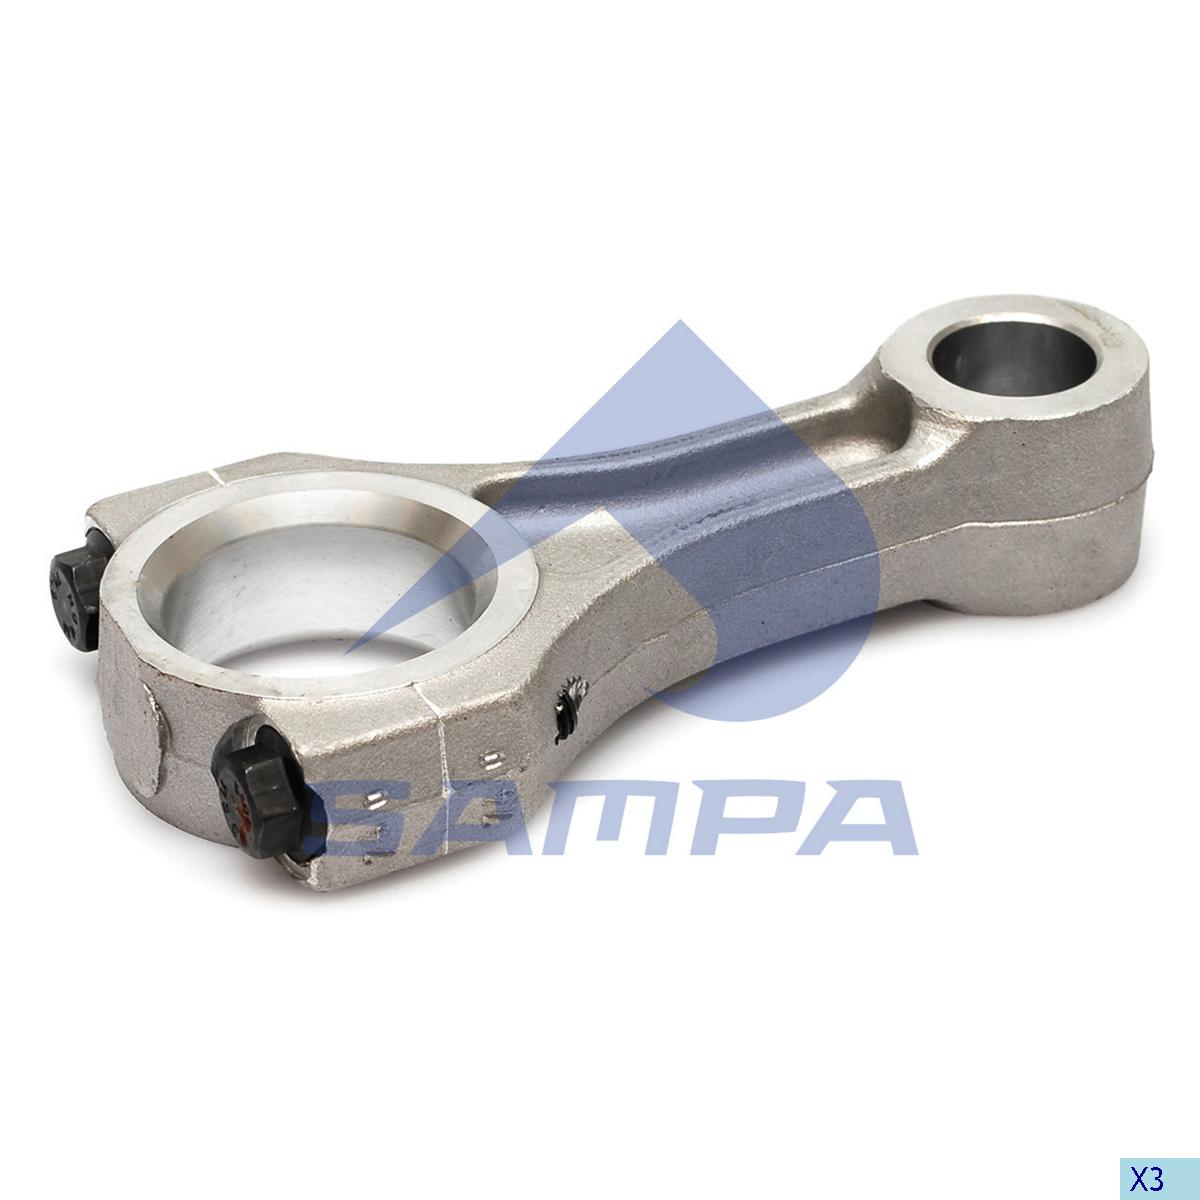 Connecting Rod, Piston, Mercedes, Compressed Air System